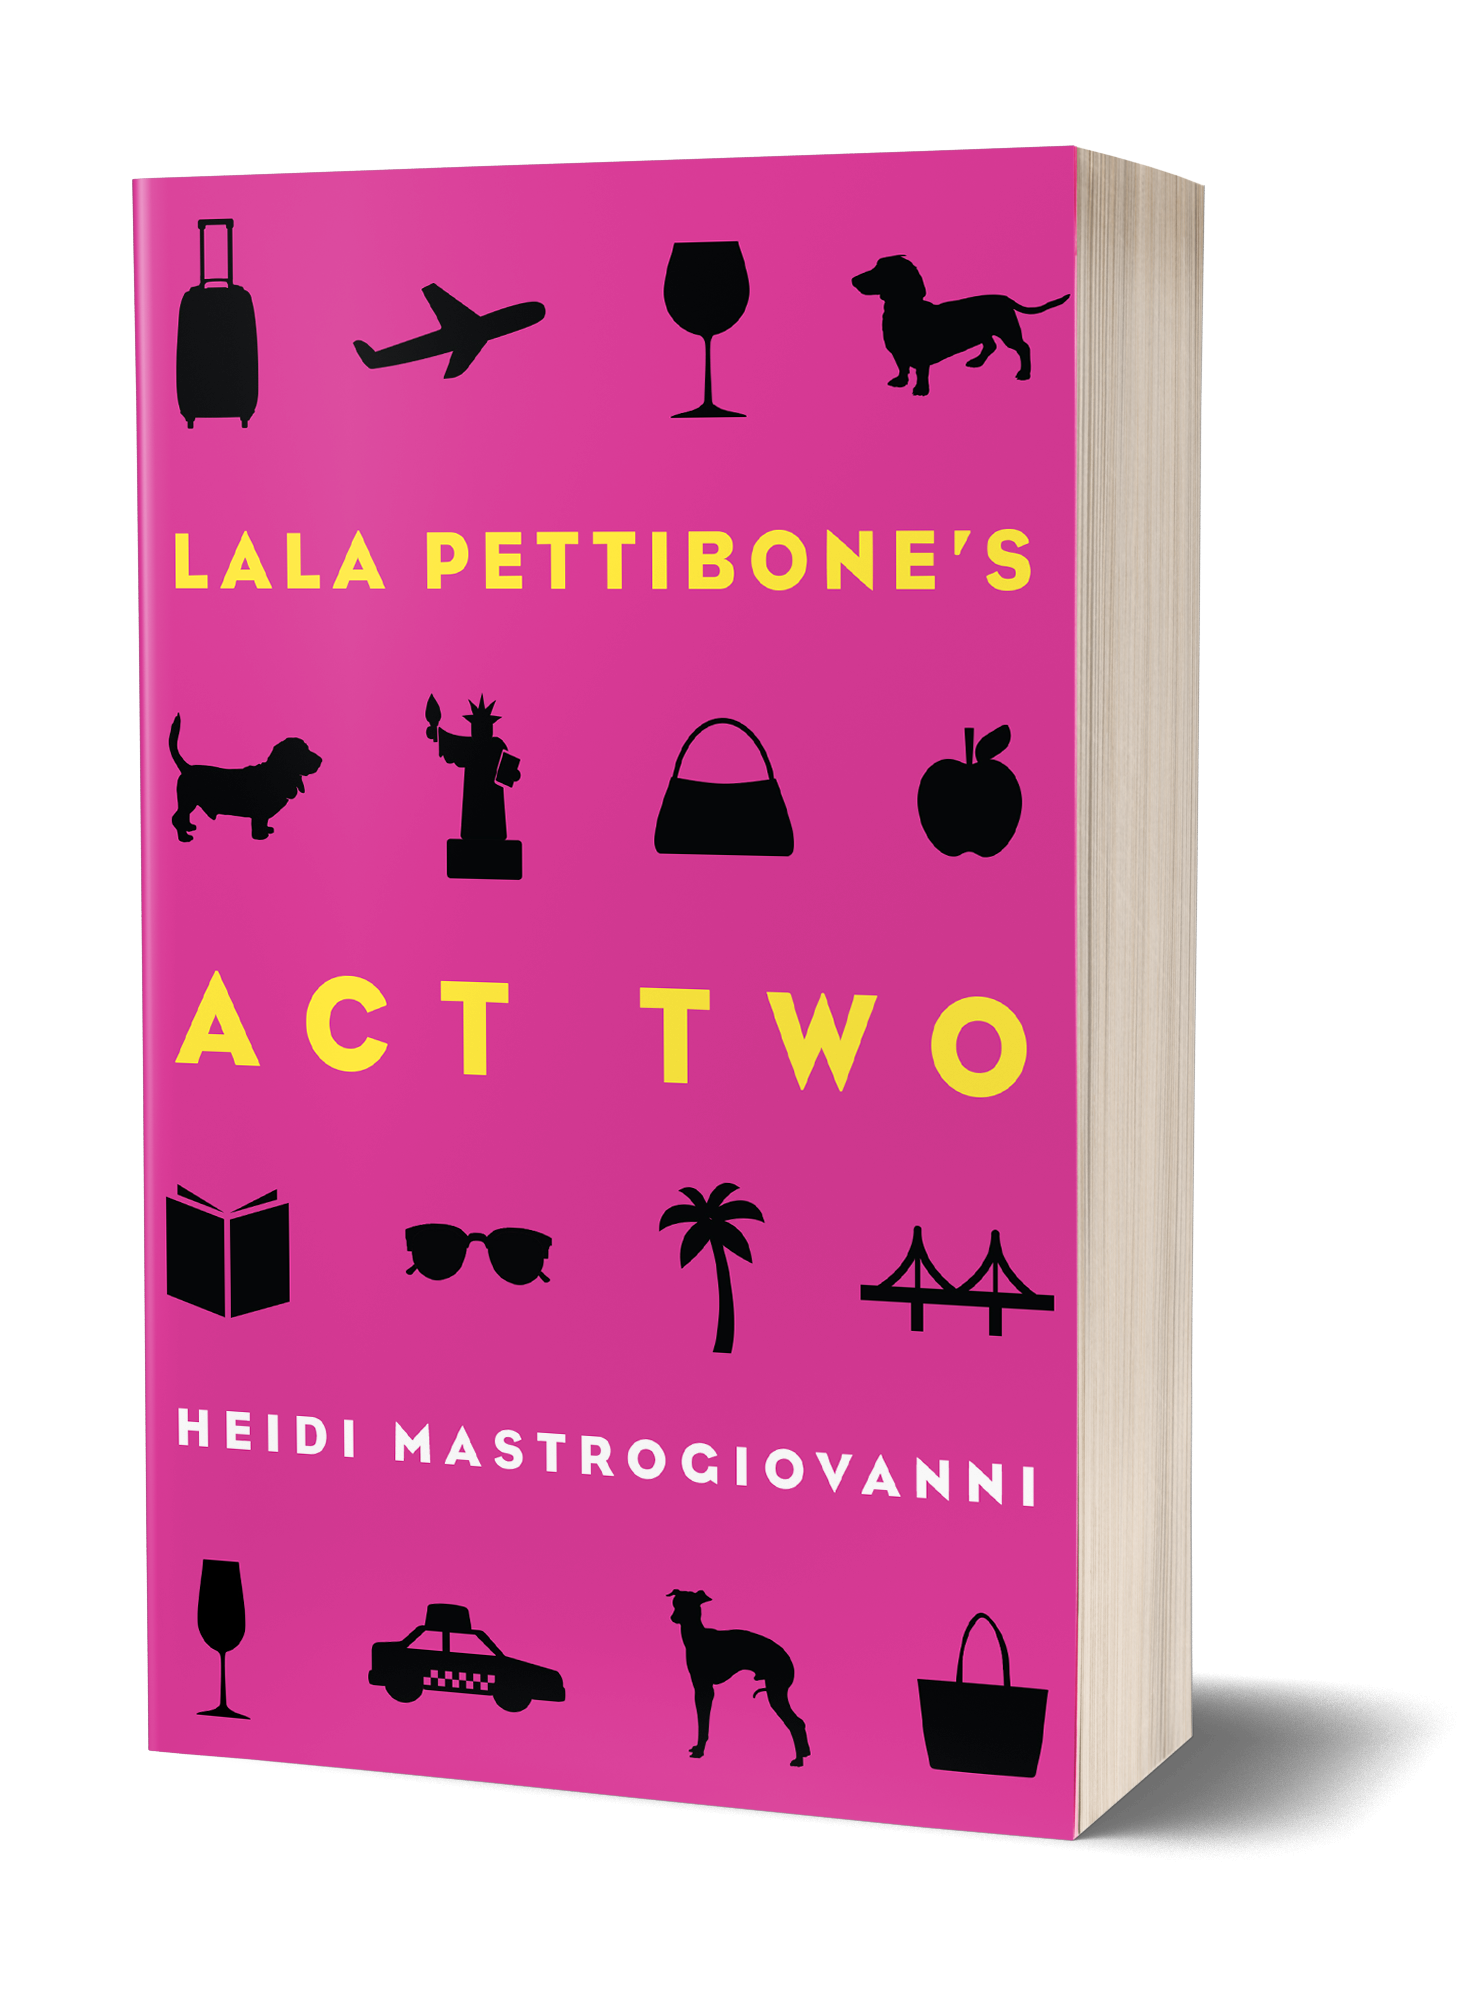 Lala Pettibone's Act Two book cover, pink background, yellow words, stand alone images, sunglasses, hats, purses, dog, taxi, book, palm tree